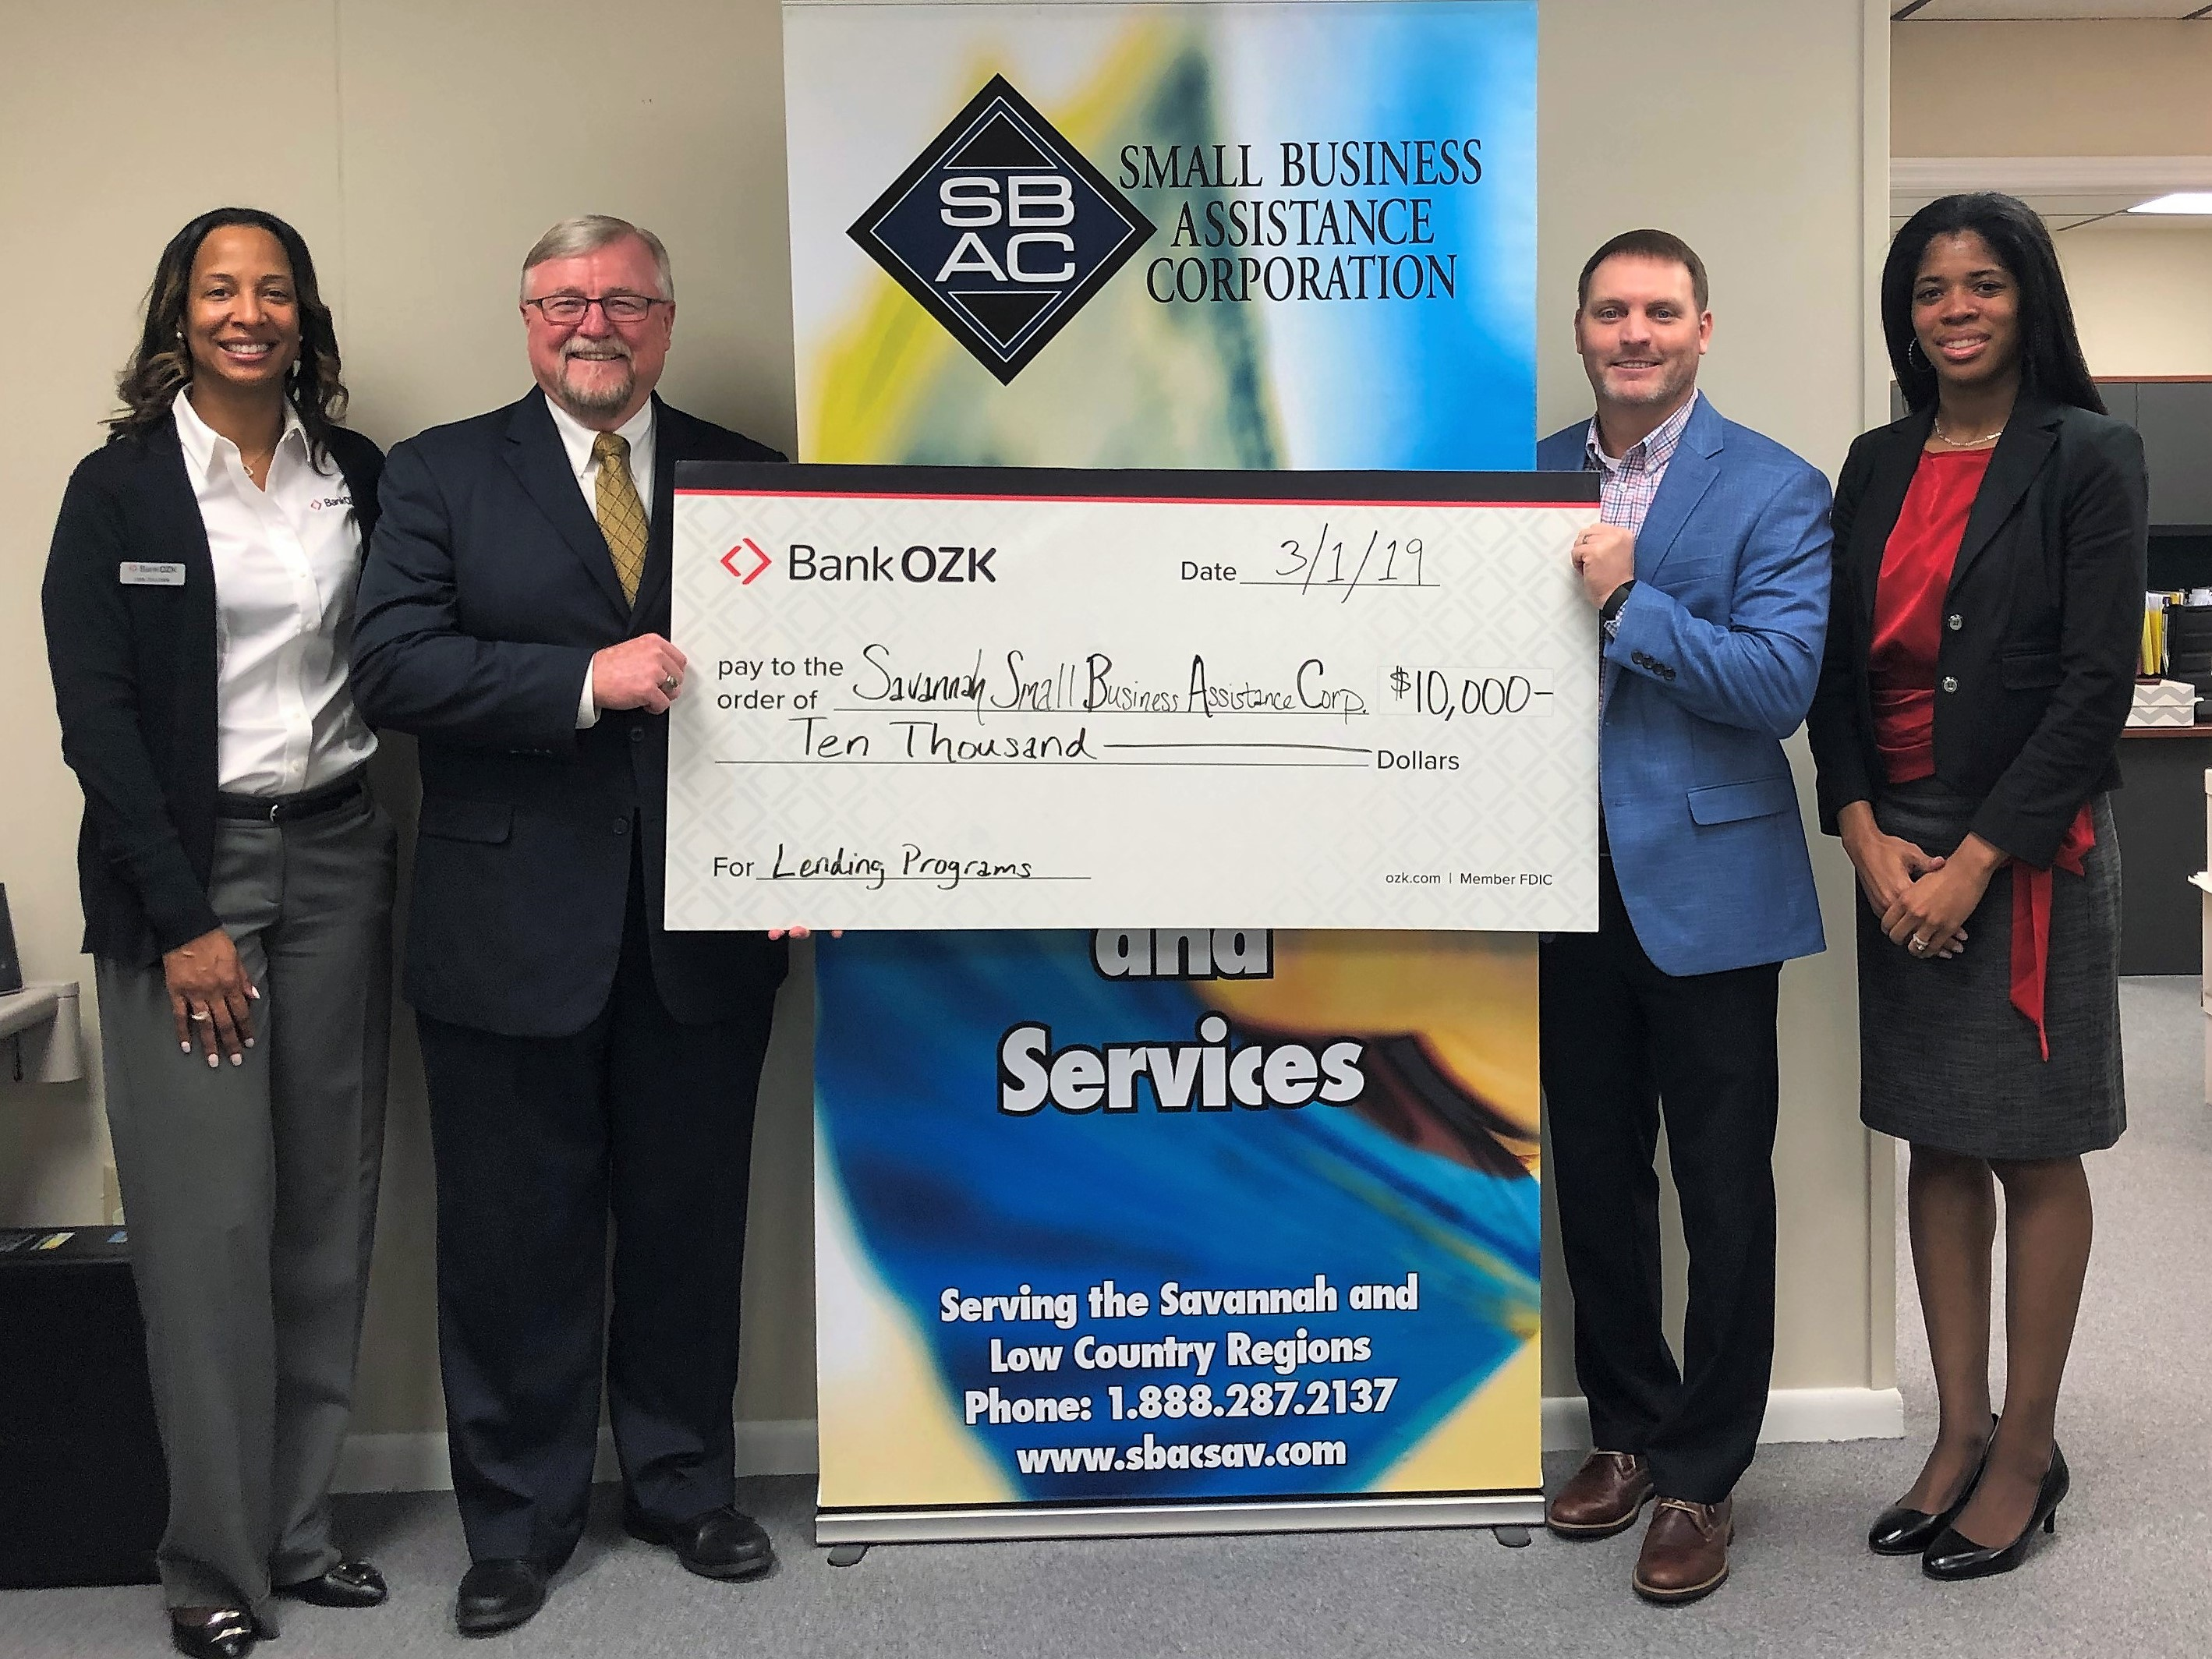 BANK OZK presenting check to Small Business Assistance Corporation